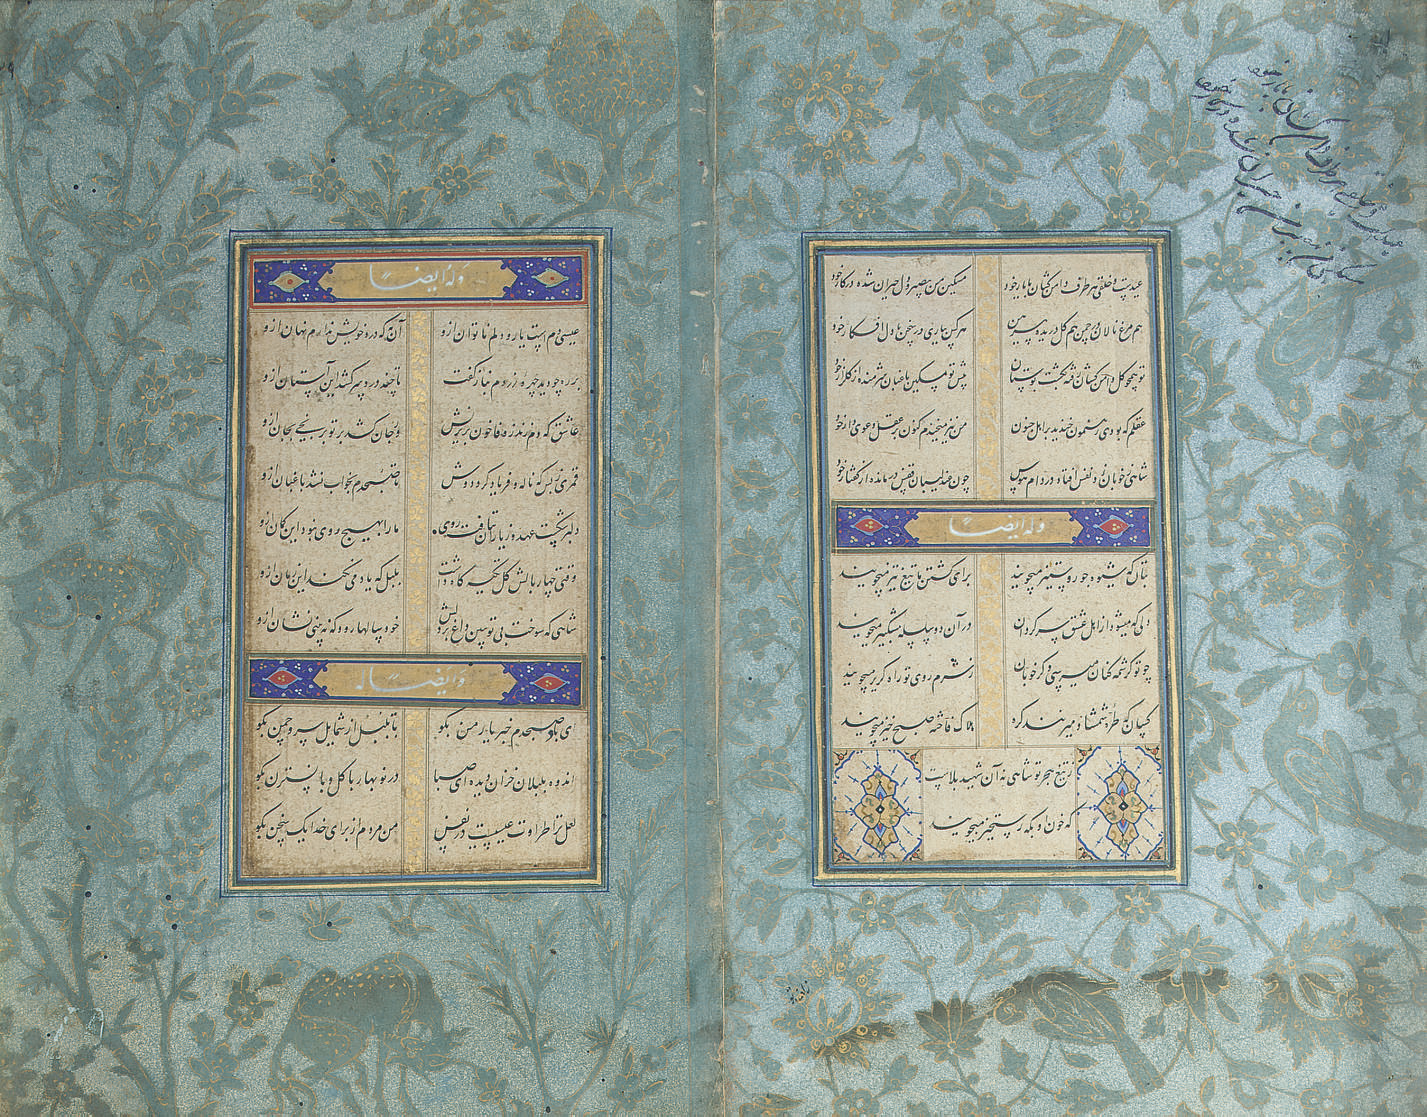 TWO PAGES WITH ILLUMINATED BOR